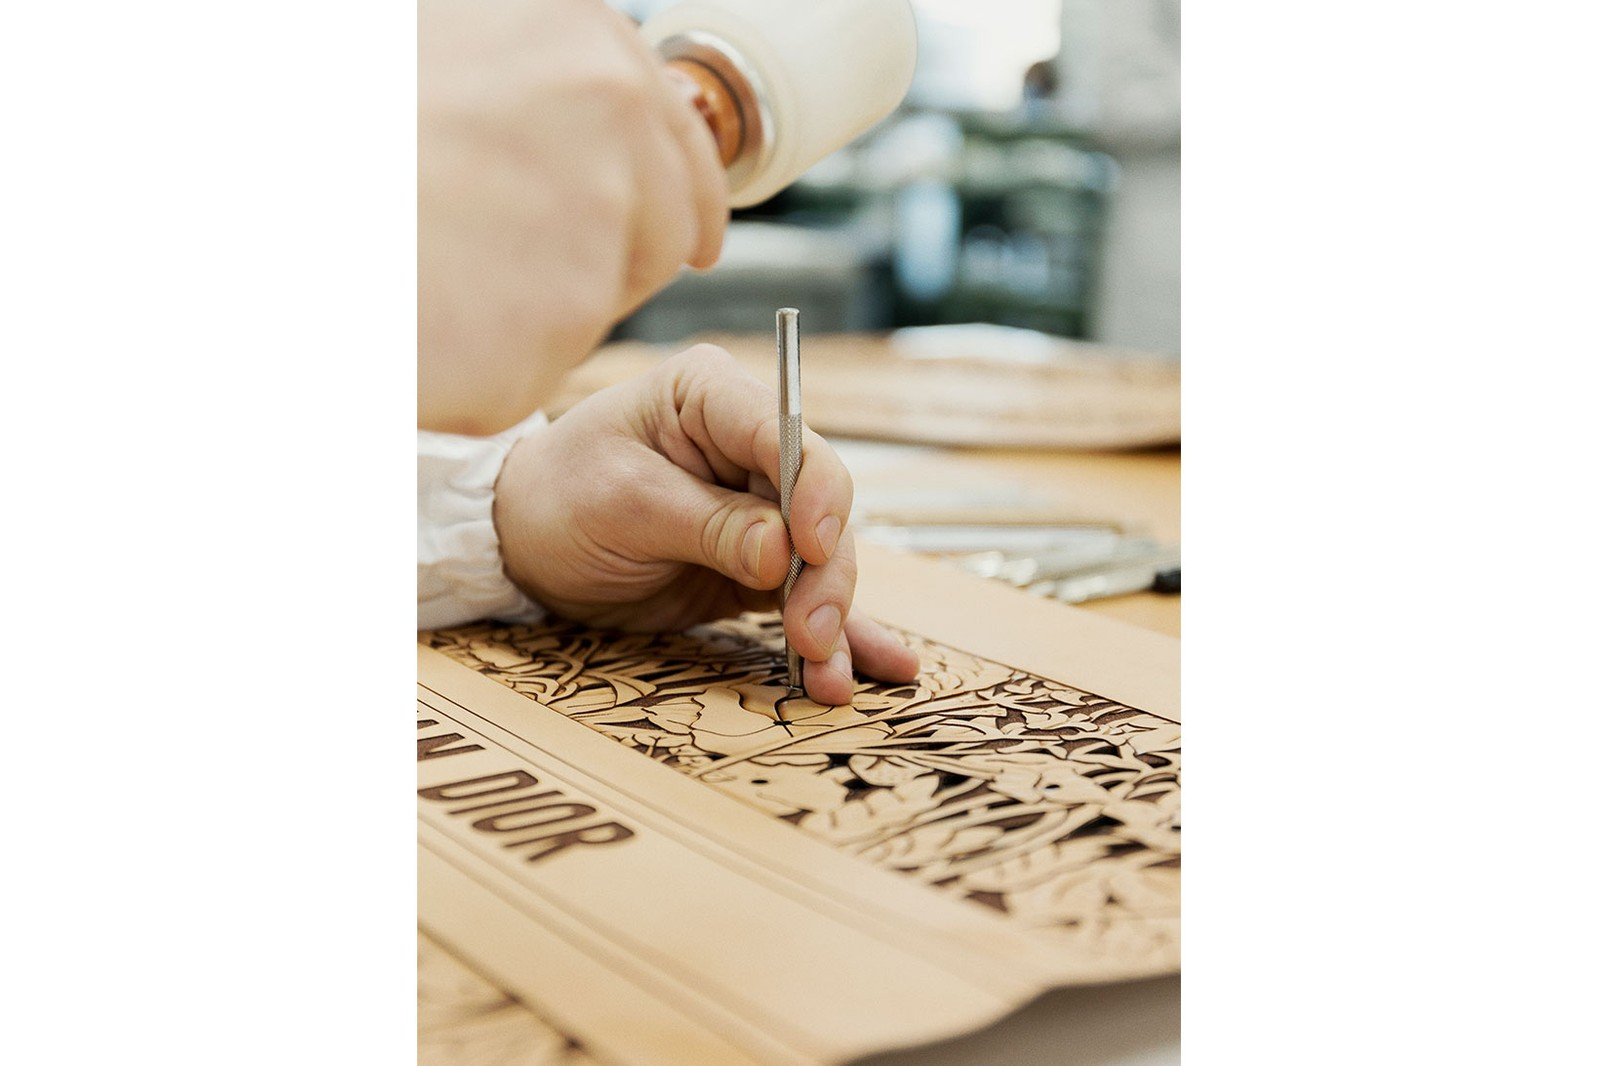 dior book tote handbag sculpted leather tooling how it's made bts savoir faire craftsmanship